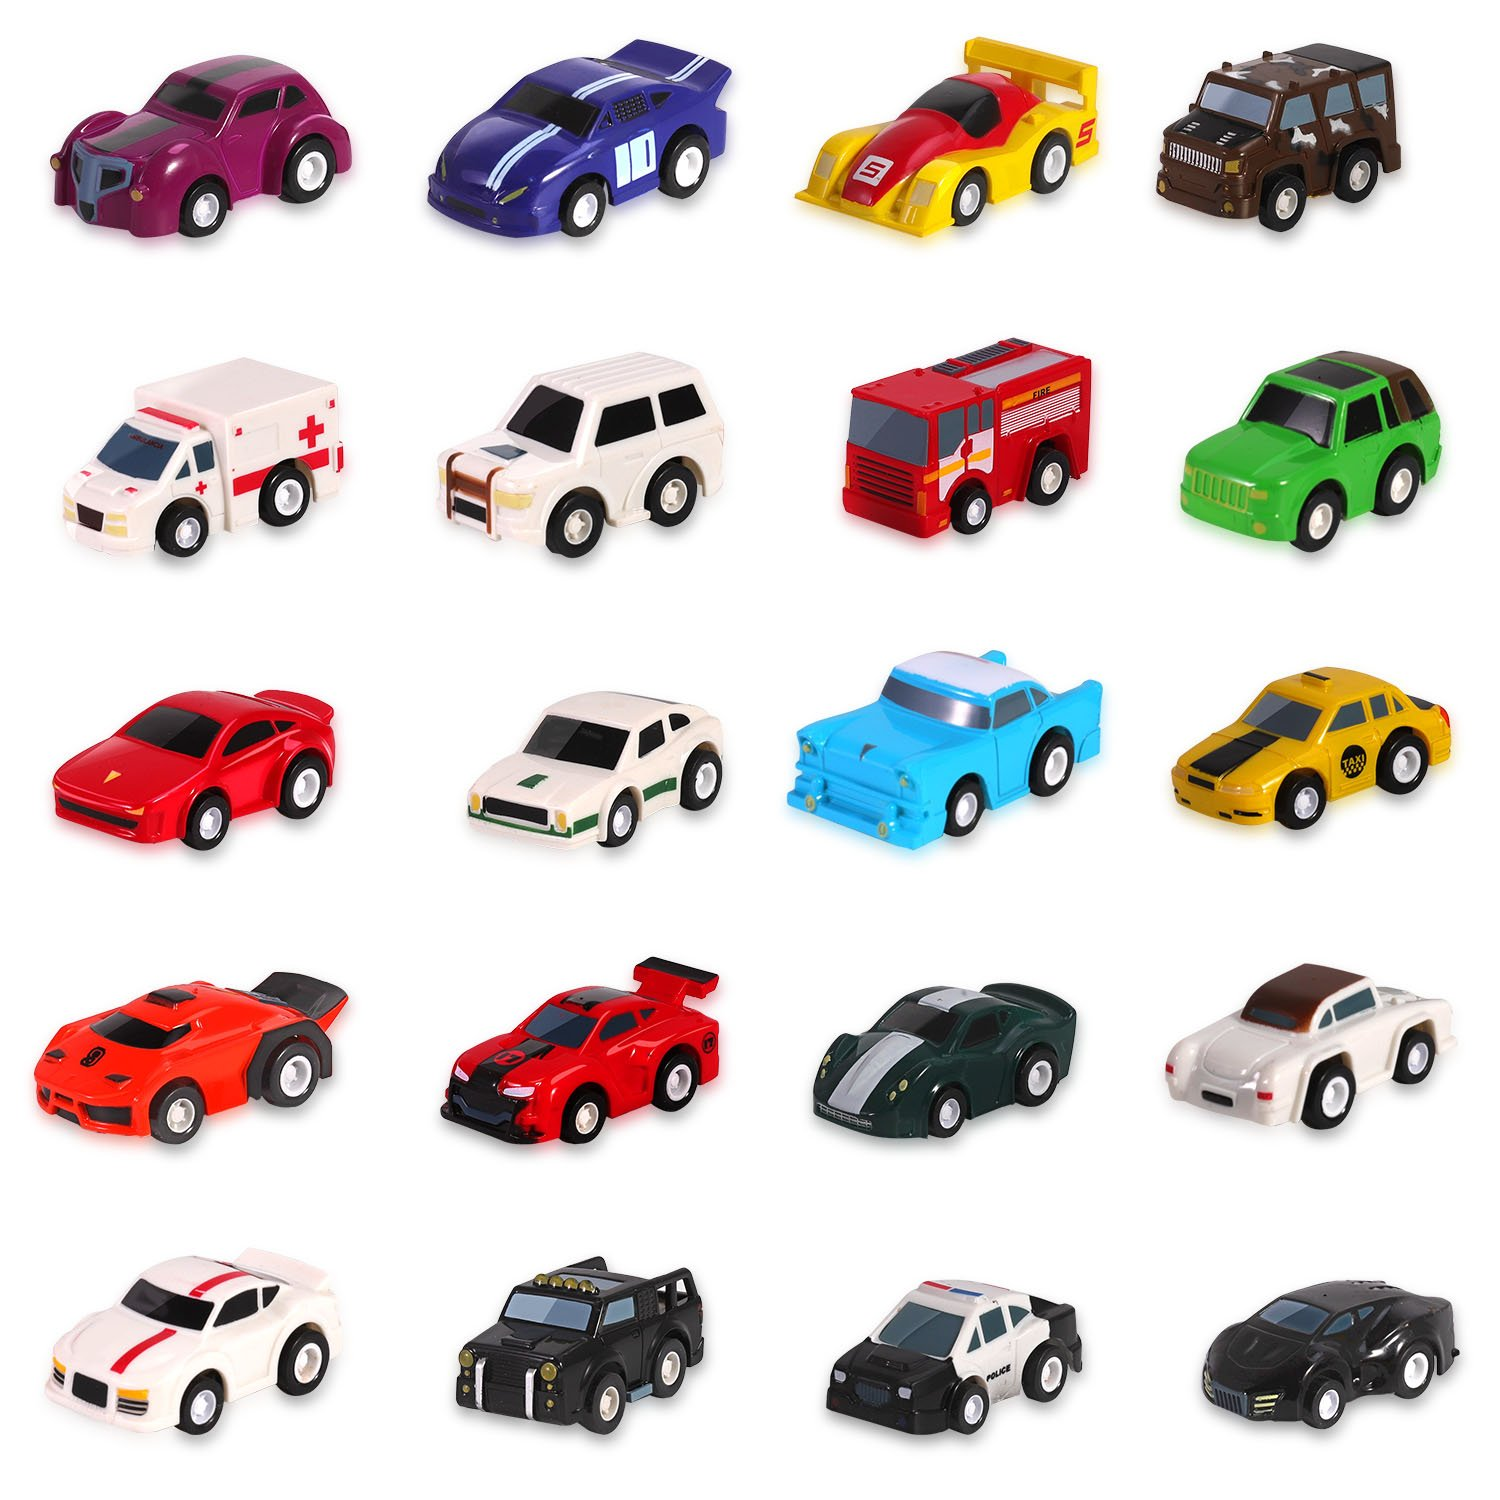 Liberty Imports 20 Assorted Deluxe Car Gift Pack Play Set | Colorful Mini Toy Cars with High Compression Springs | Ideal for Kids Age 3, 4, 5, 6 Year Old Boys, Girls